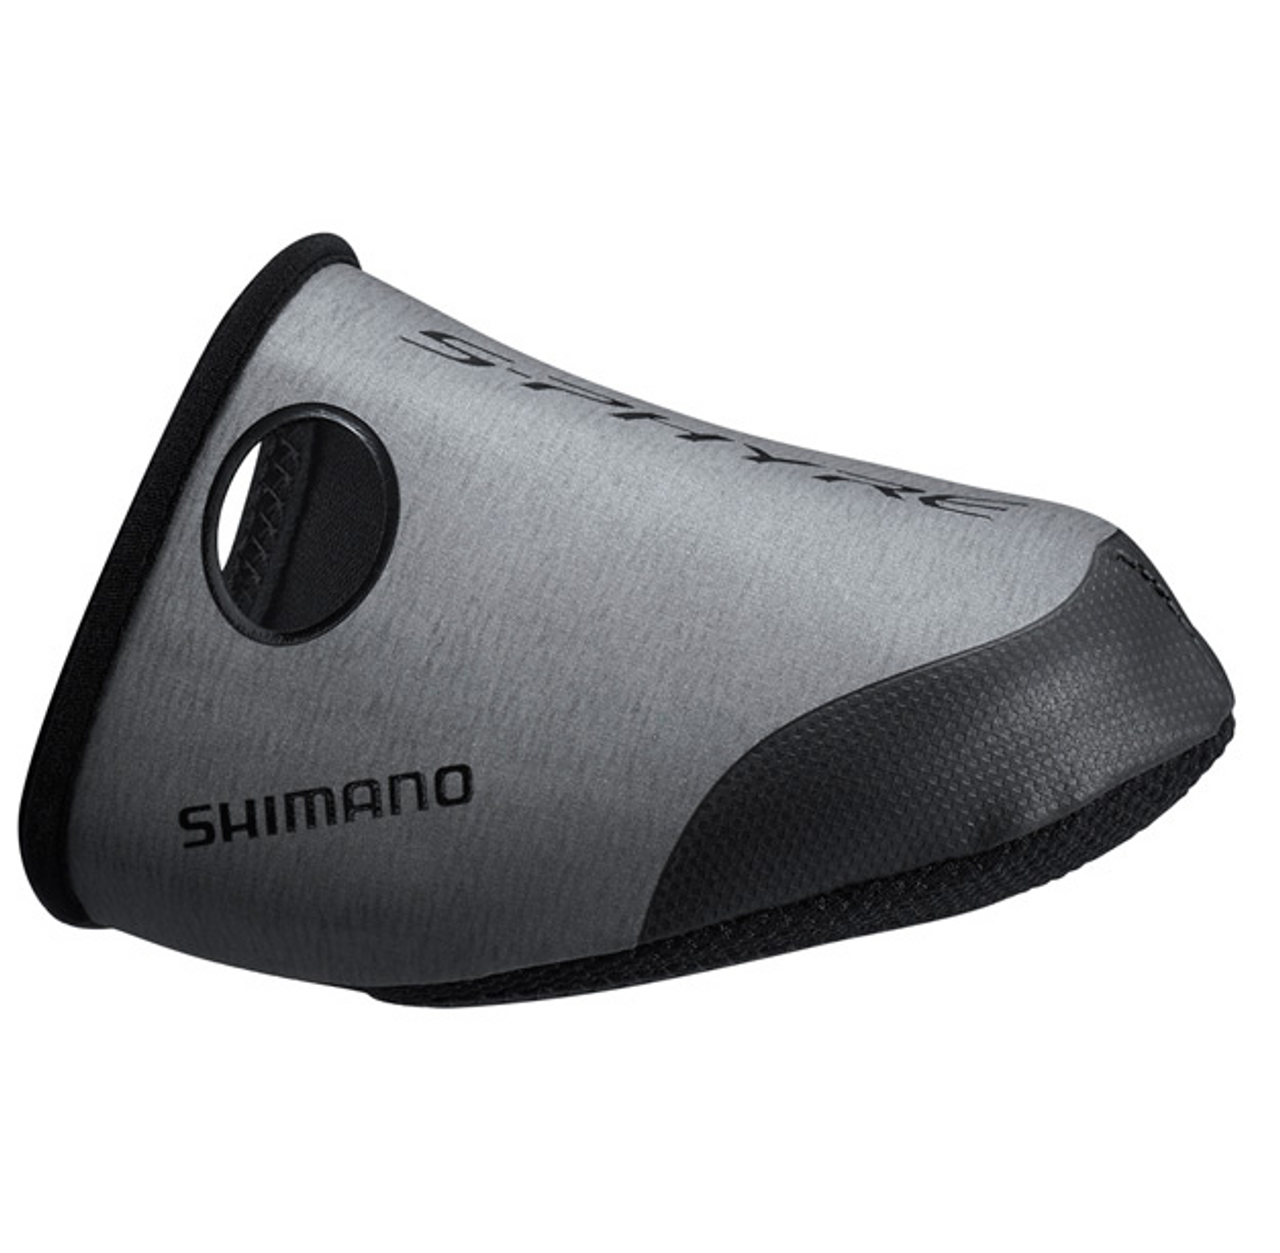 Shimano S-PHYRE Road Toe Covers In Black All Sizes